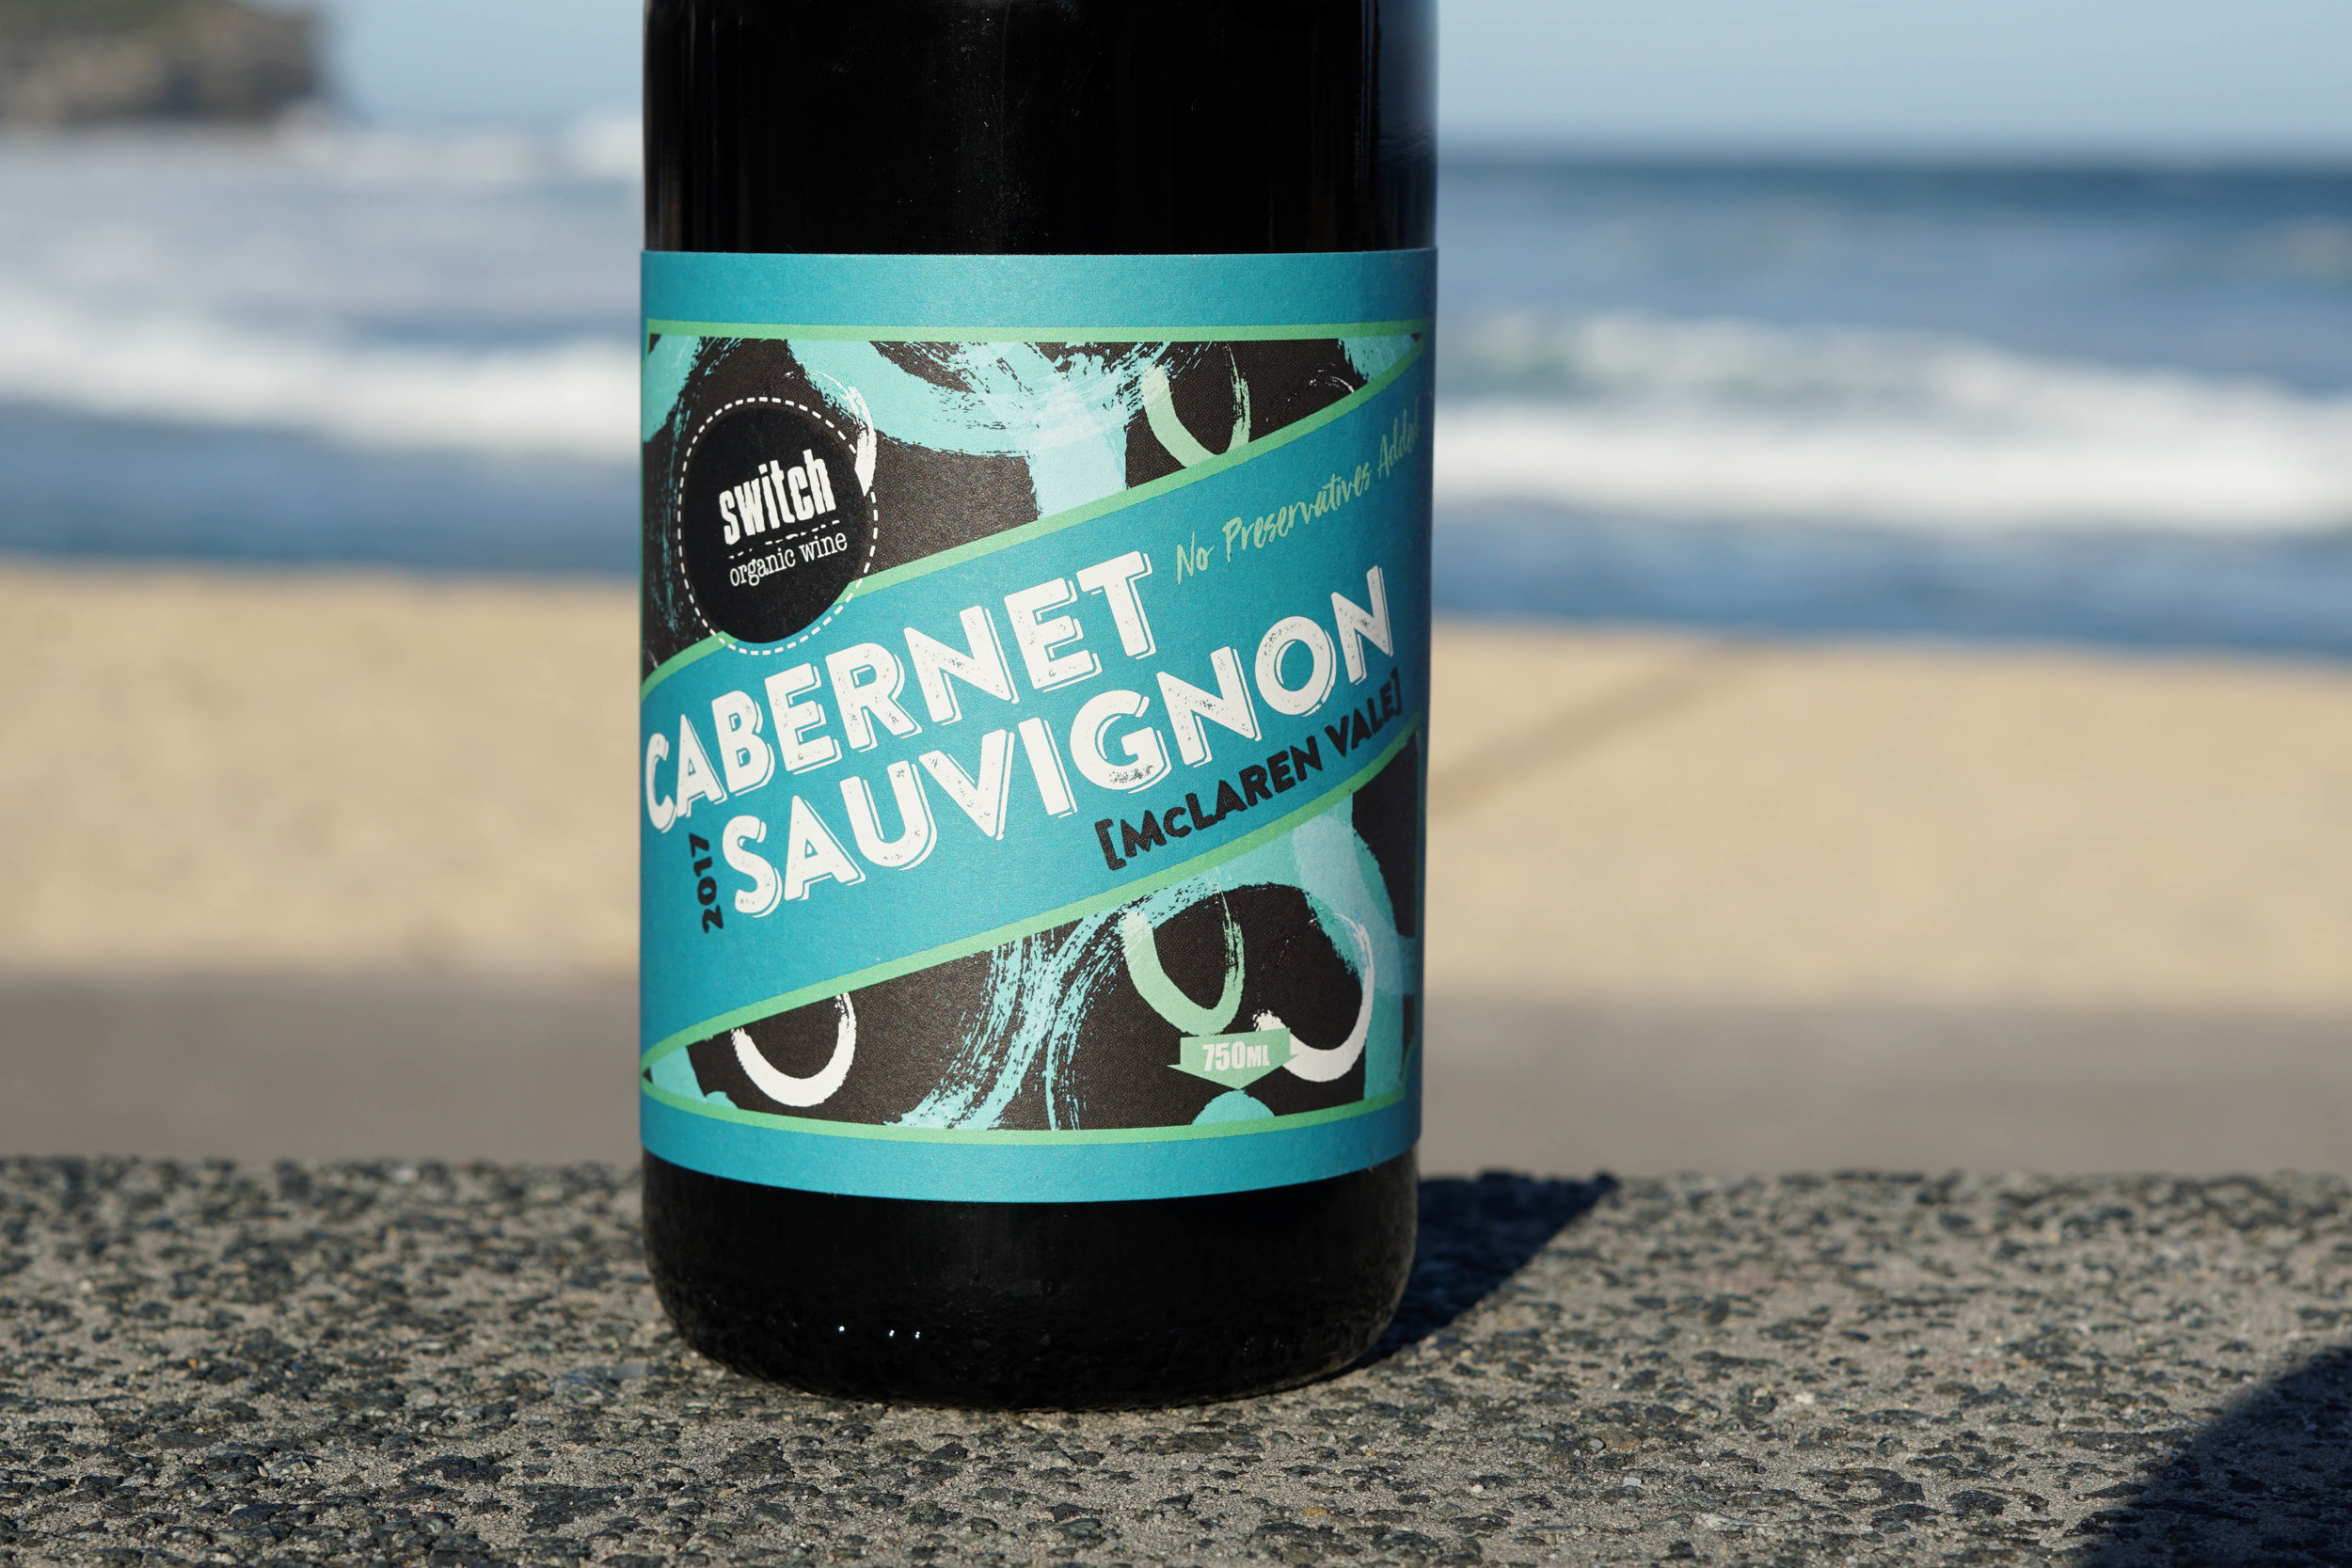 2017 ~ CABERNET SAUVIGNON - Preservative free - Certified organic approx 1060 bottles produced.  100% destemmed (by hand) Cabernet Sauvignon sourced from clay based soils in the McLaren Vale at 95m elevation goes through a wholeberry ferment. Basket pressed 10 days later, and approx a month later completing primary fermentation in stainless steel. Racked off lees after full malolactic fermentation.  Bottled without filtration, no finings and zero added sulphur.